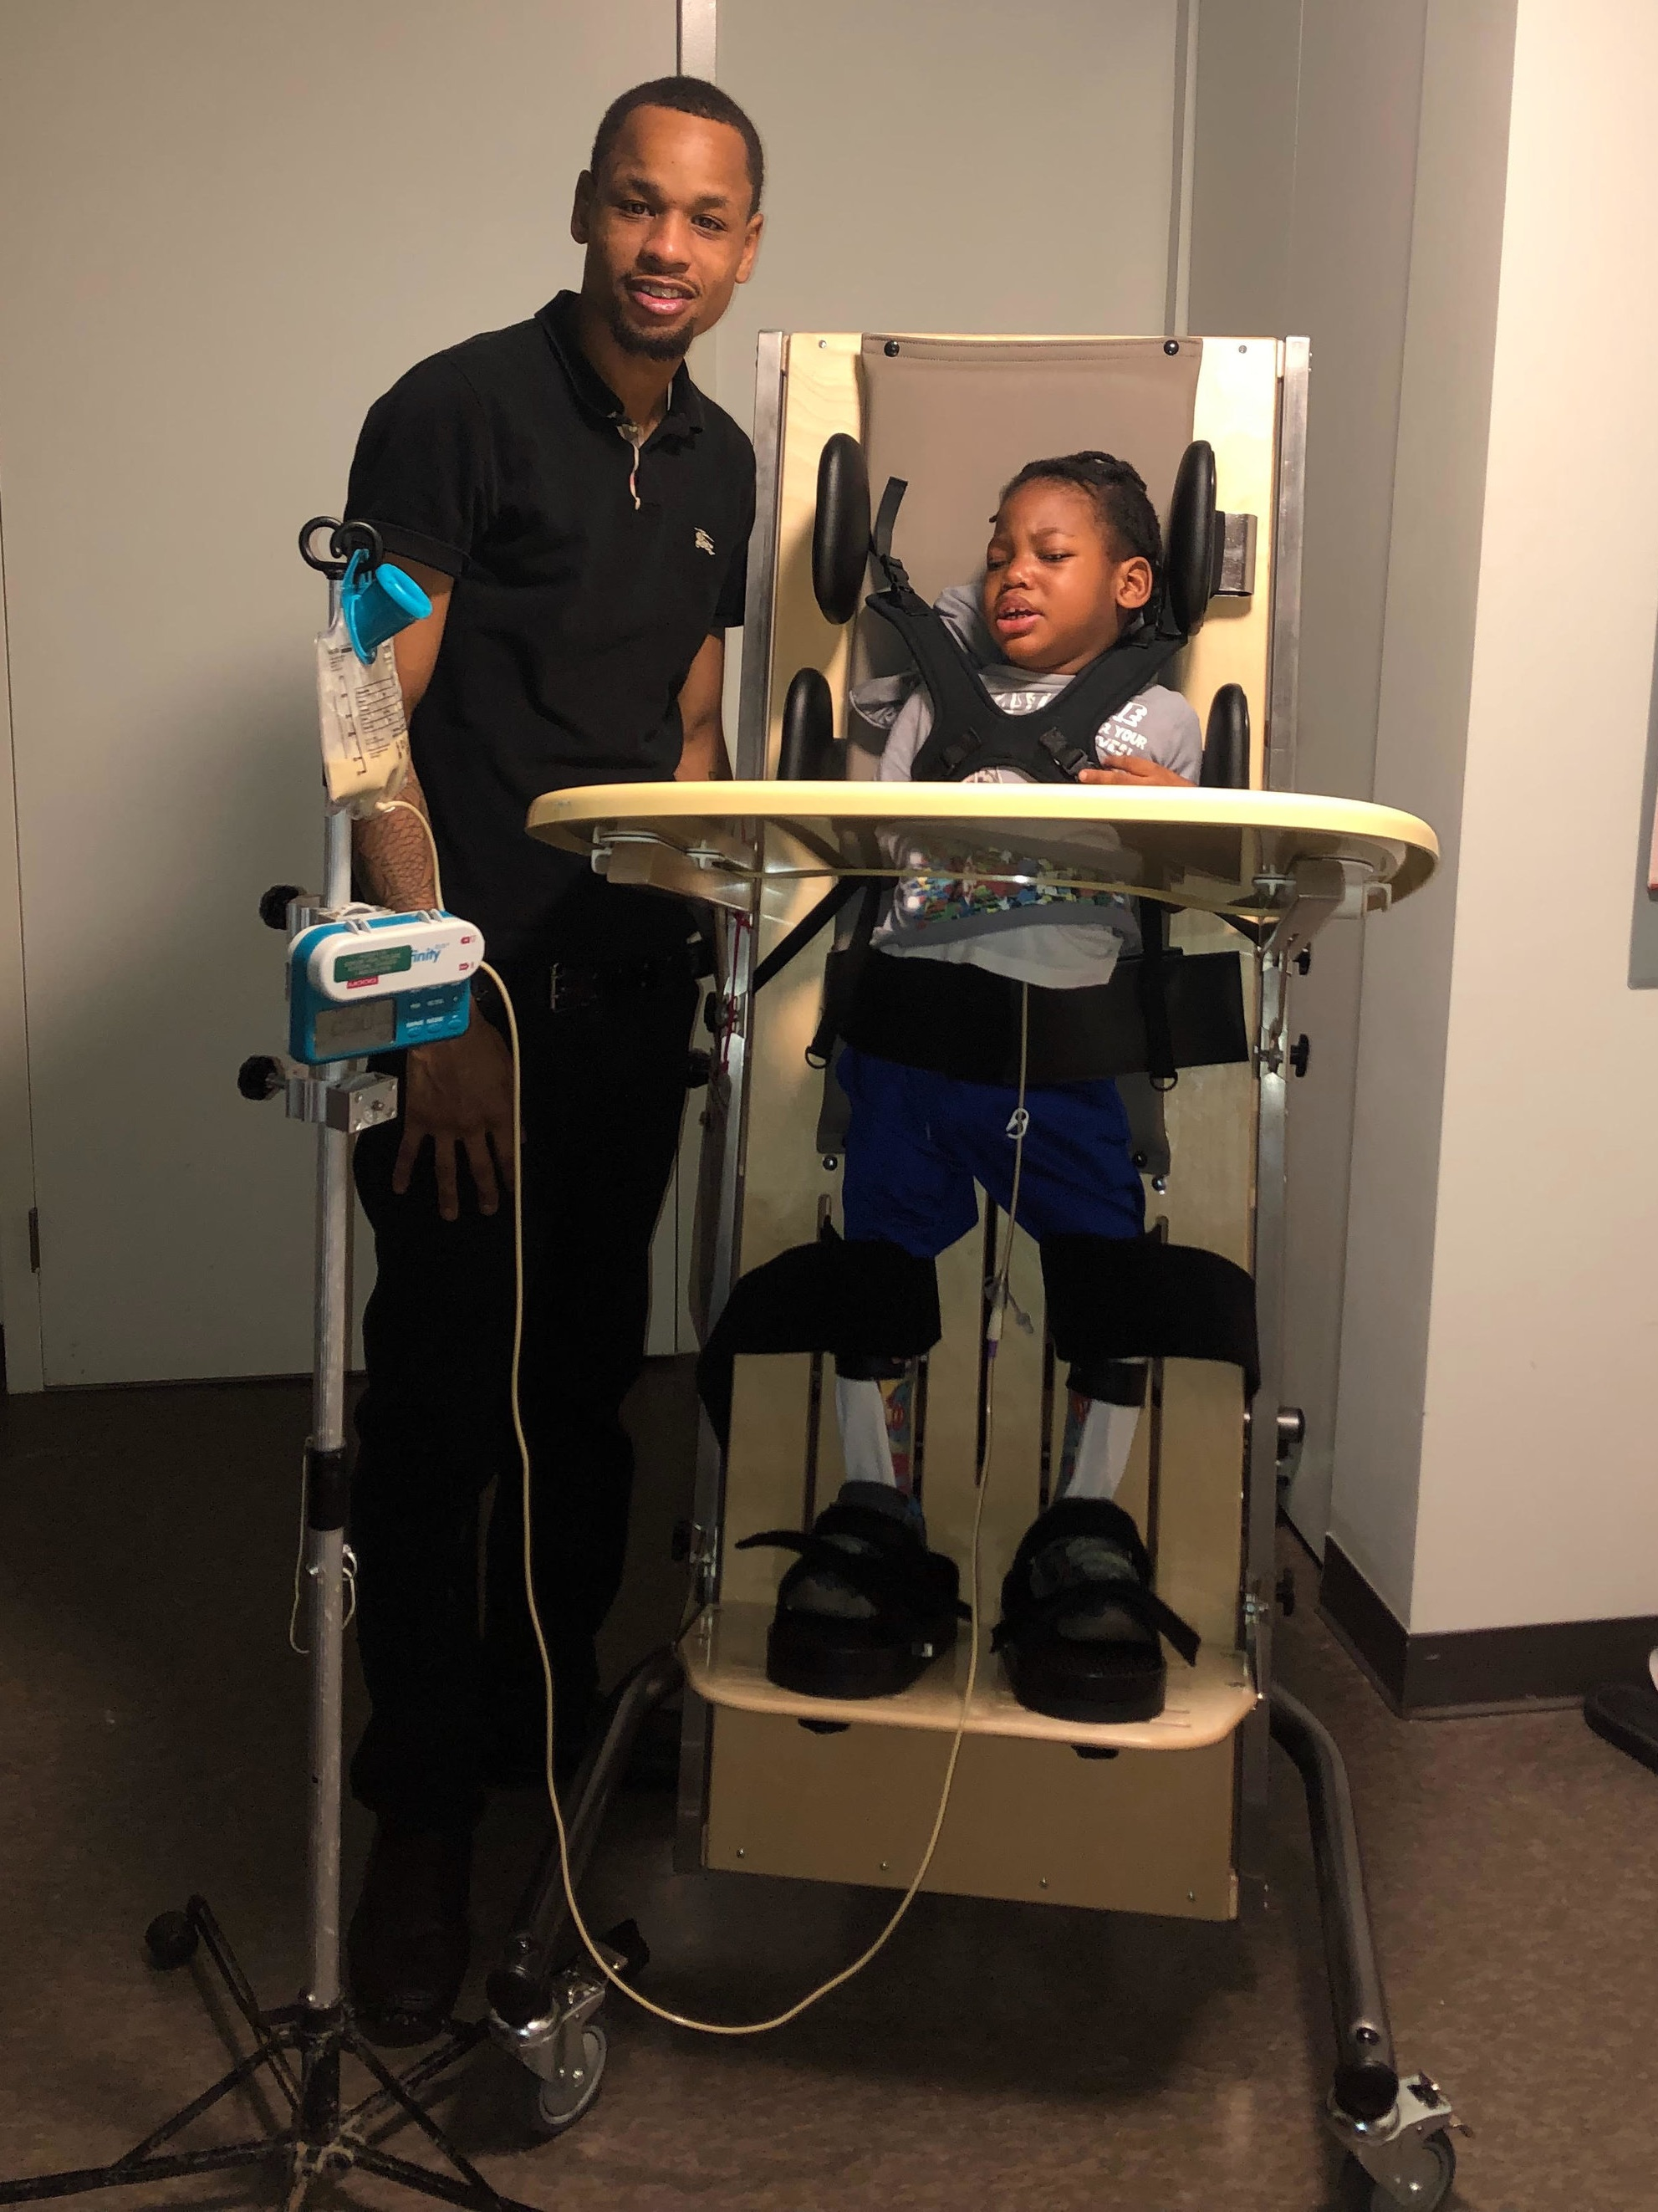 Tyree with his son Zahir in his new standing frame from Holton's Heroes